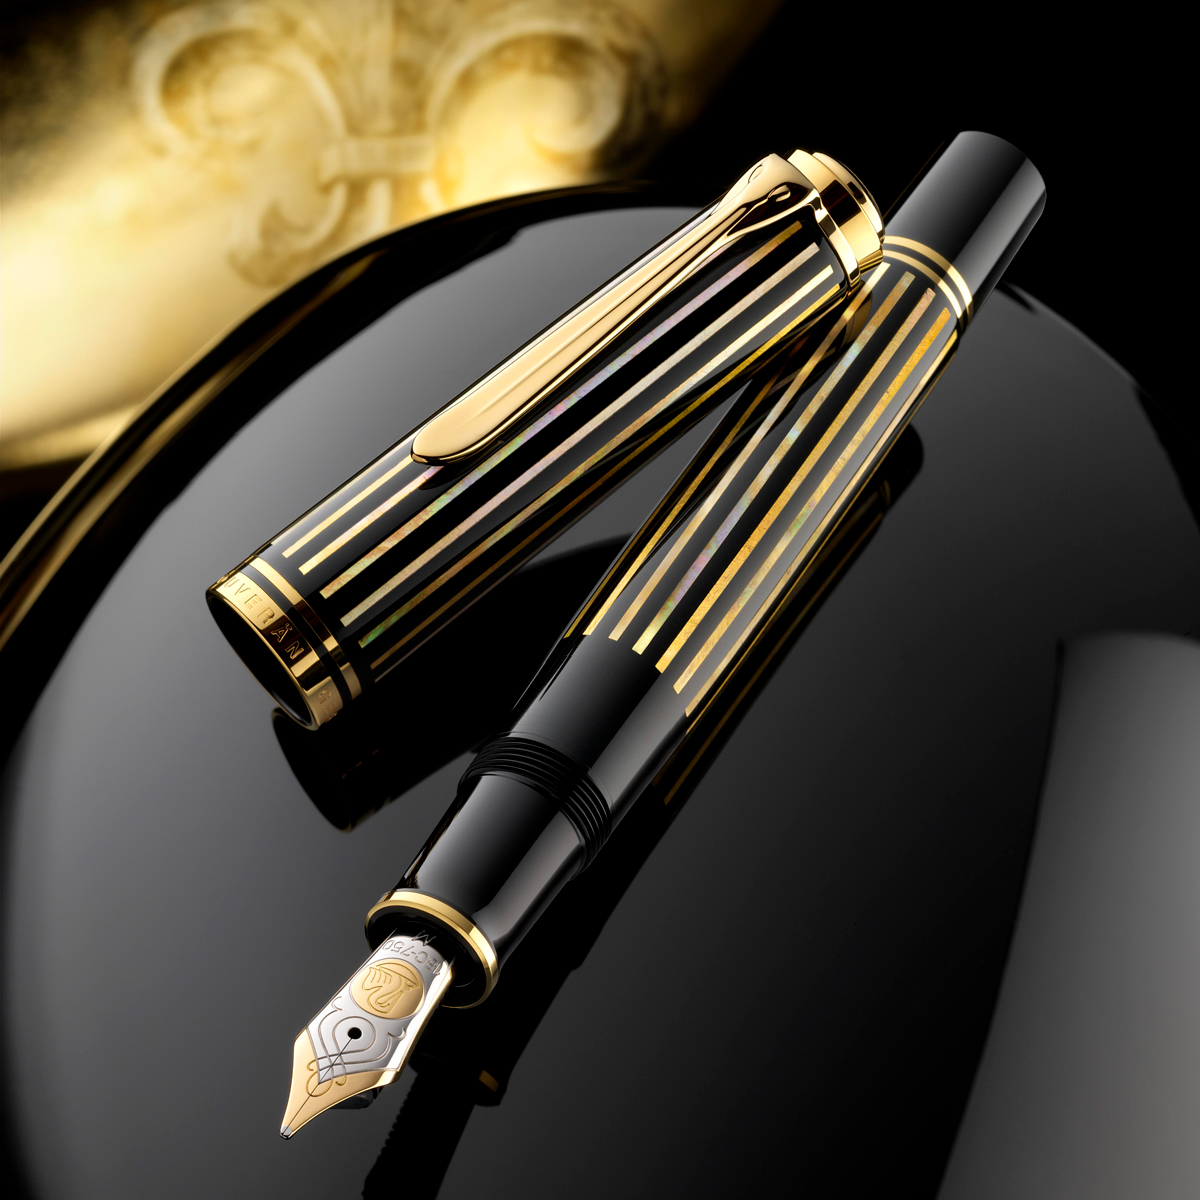 Pelikan Raden M800 Royal Gold